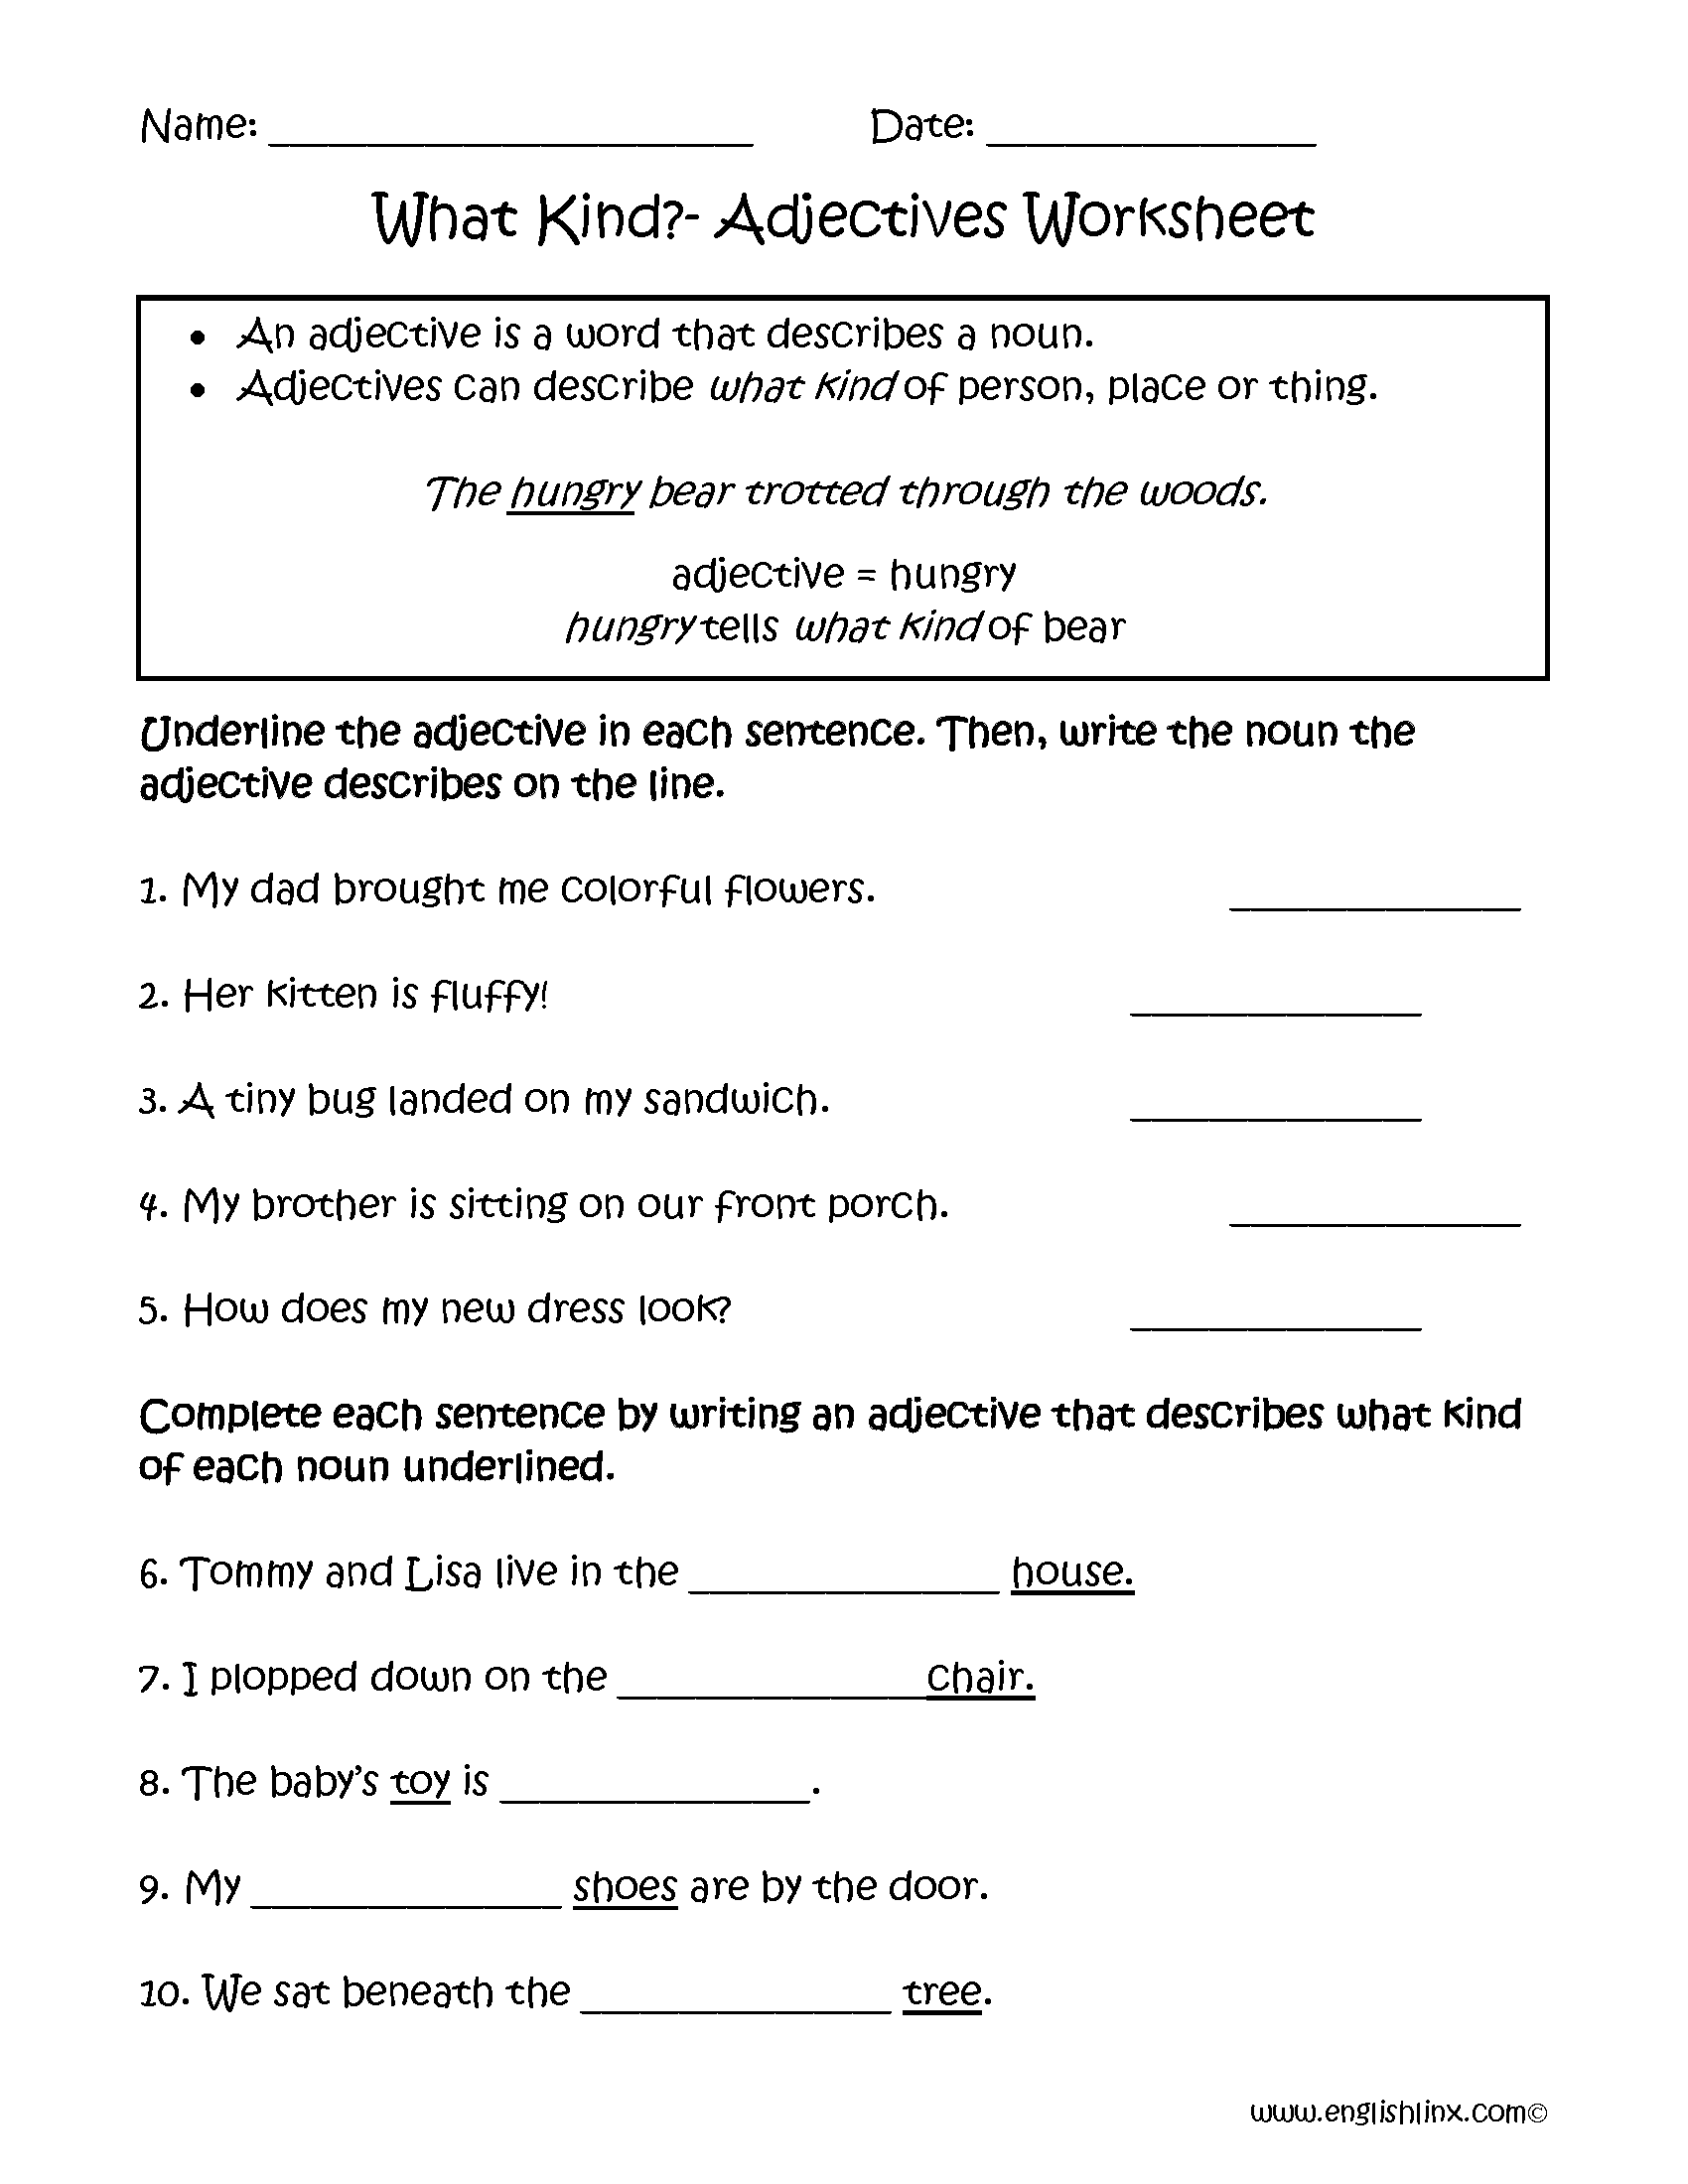 Printables Adjective Worksheets adjectives worksheets regular worksheets